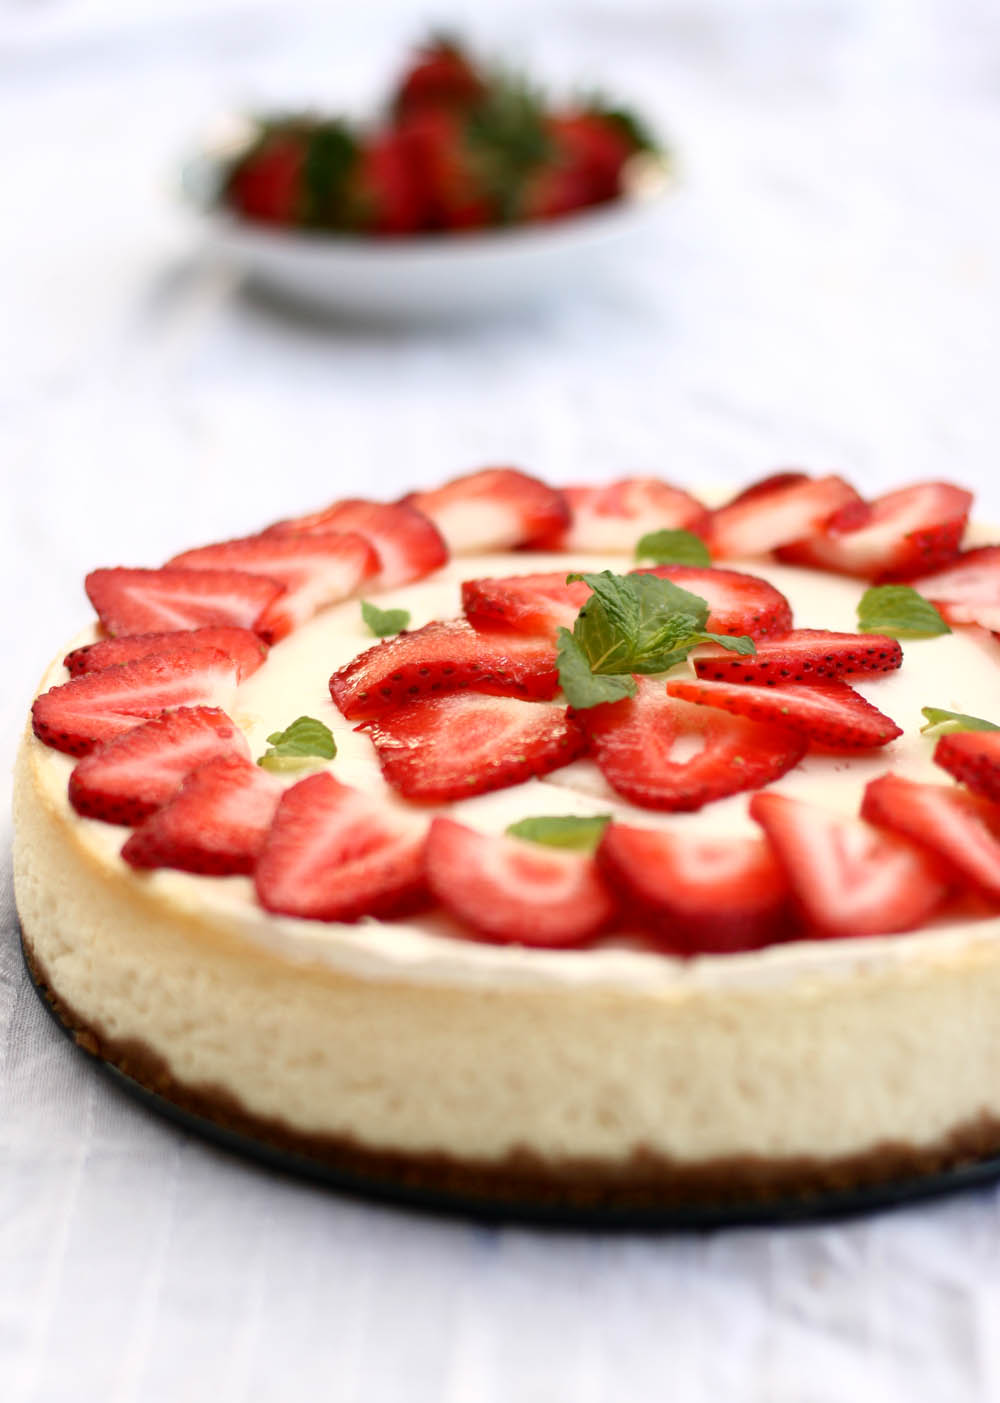 ... strawberry cheesecake overnight serve reserved strawberry sauce with